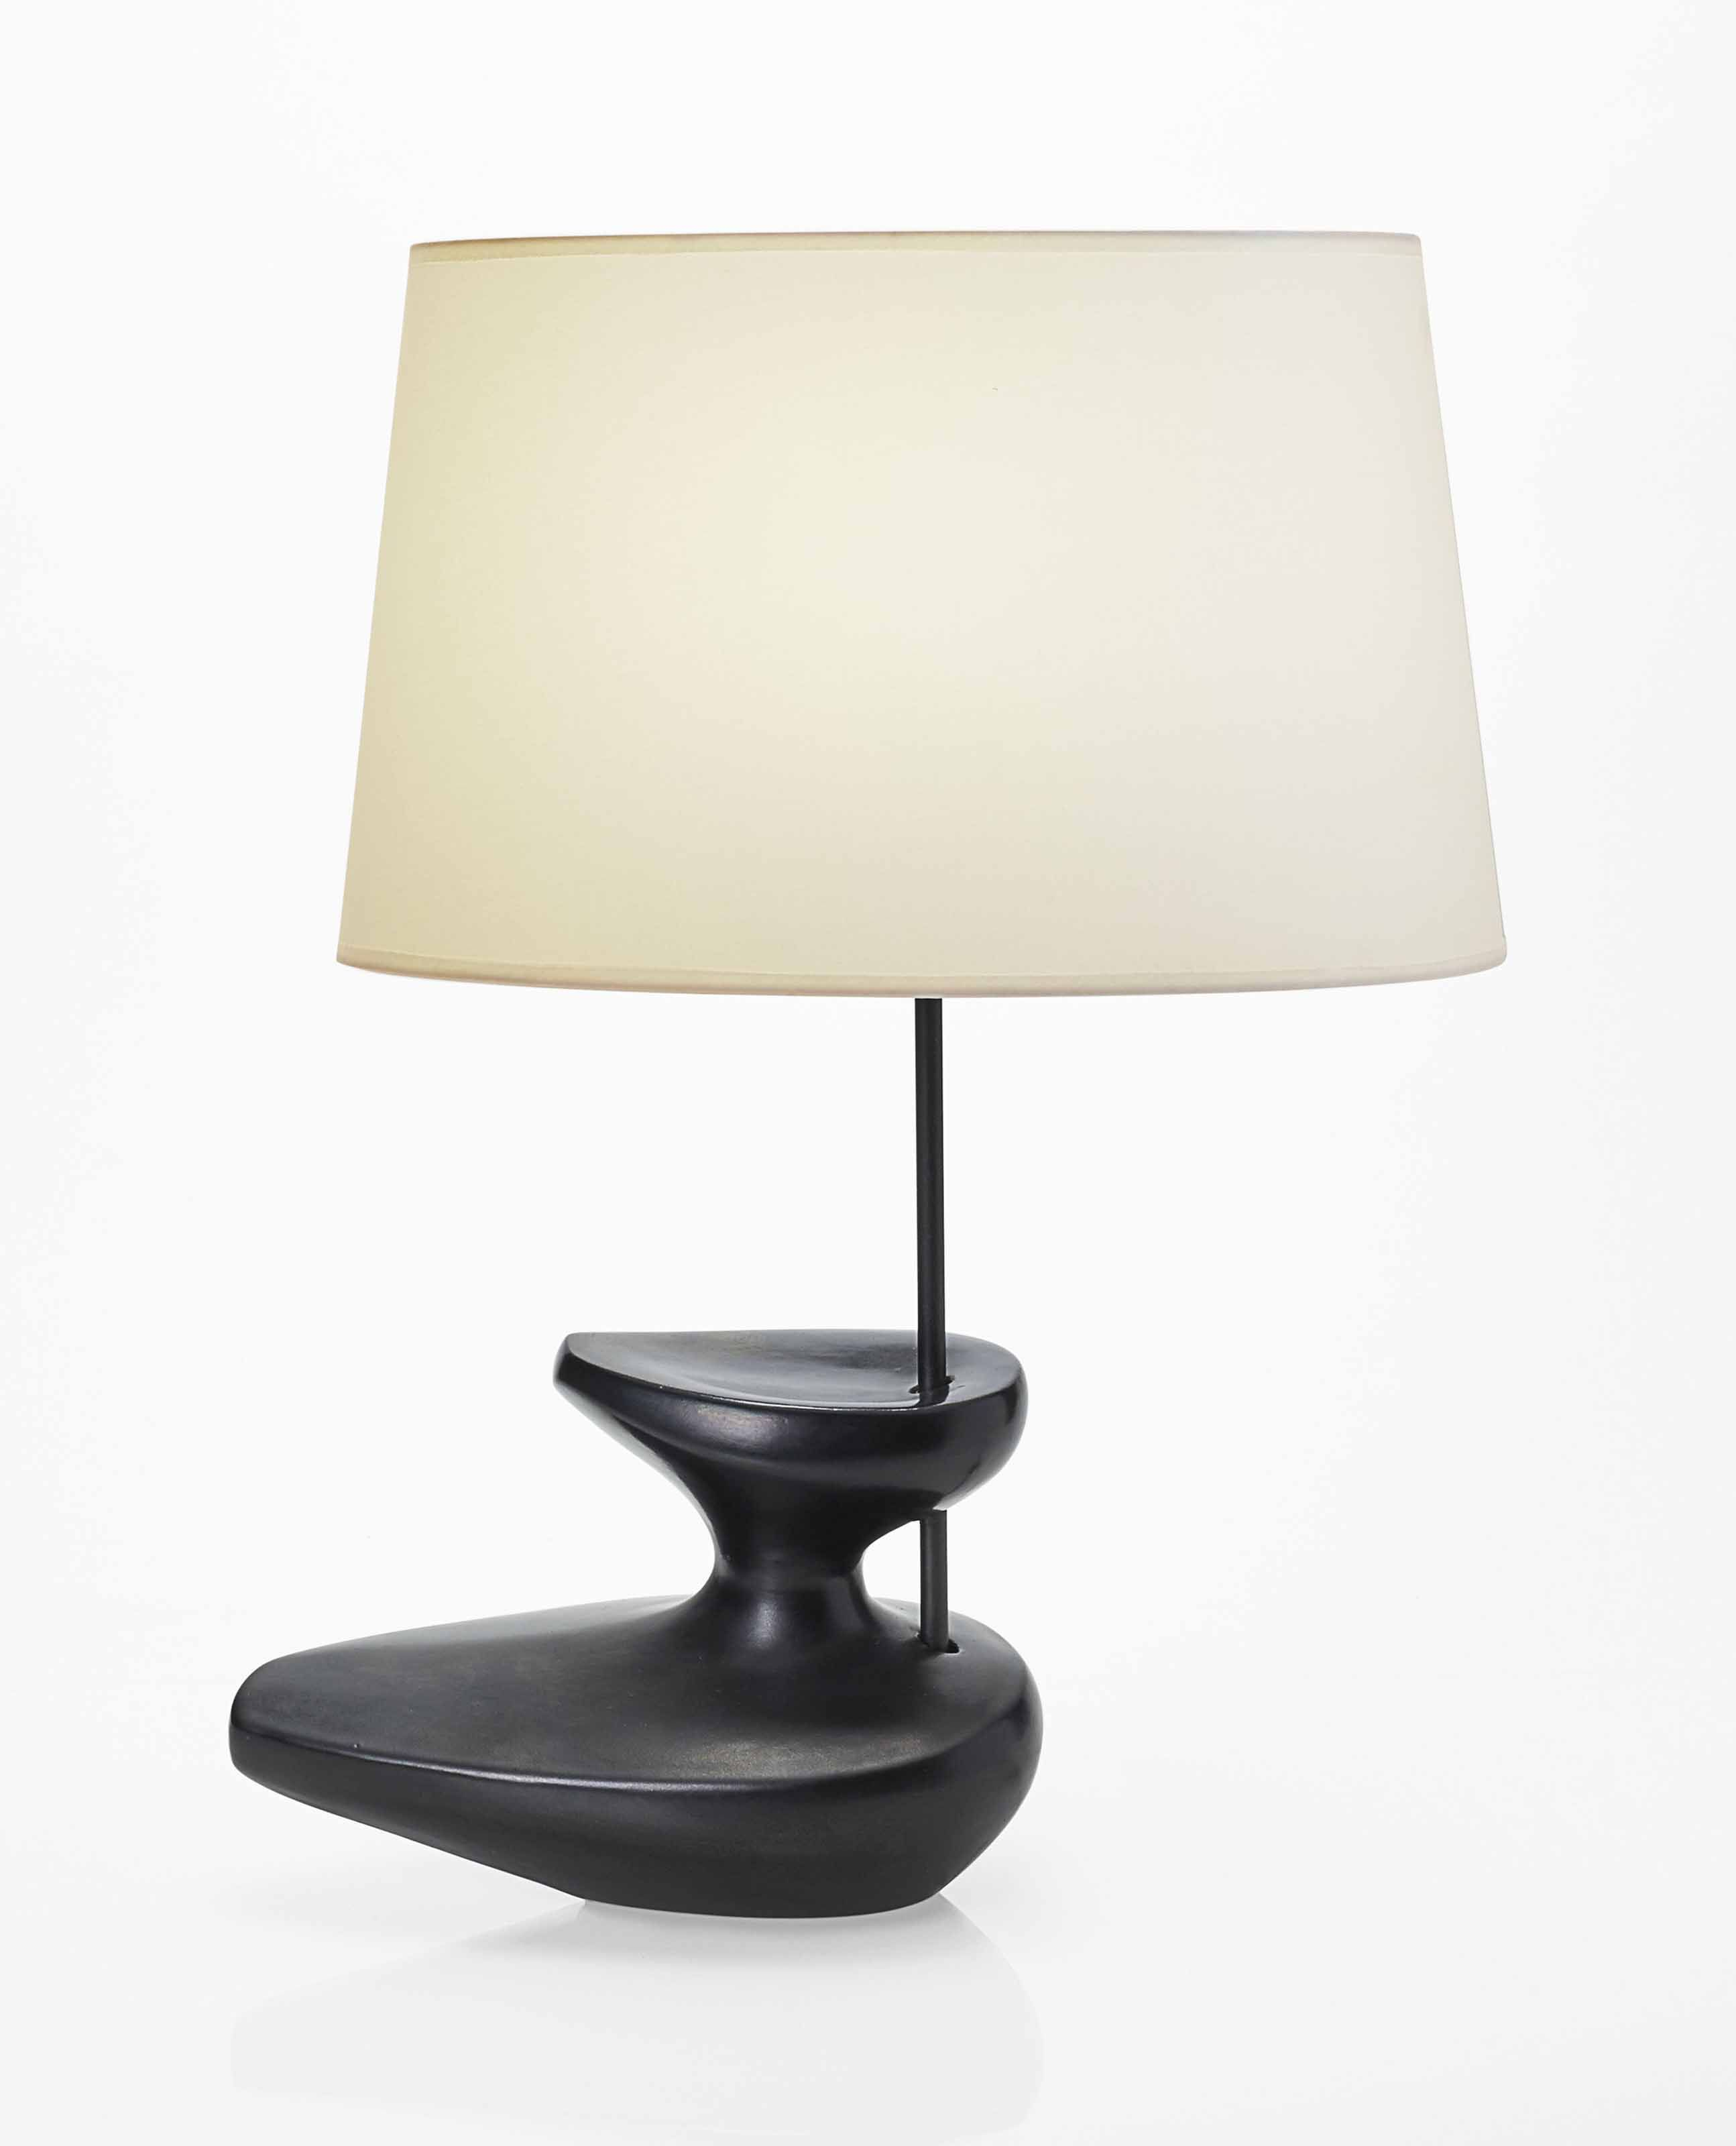 George Jouve 1910 1964 Lampe De Table Vers 1950 1950s Table Lamp Christie S Table Lamp Lamp Table